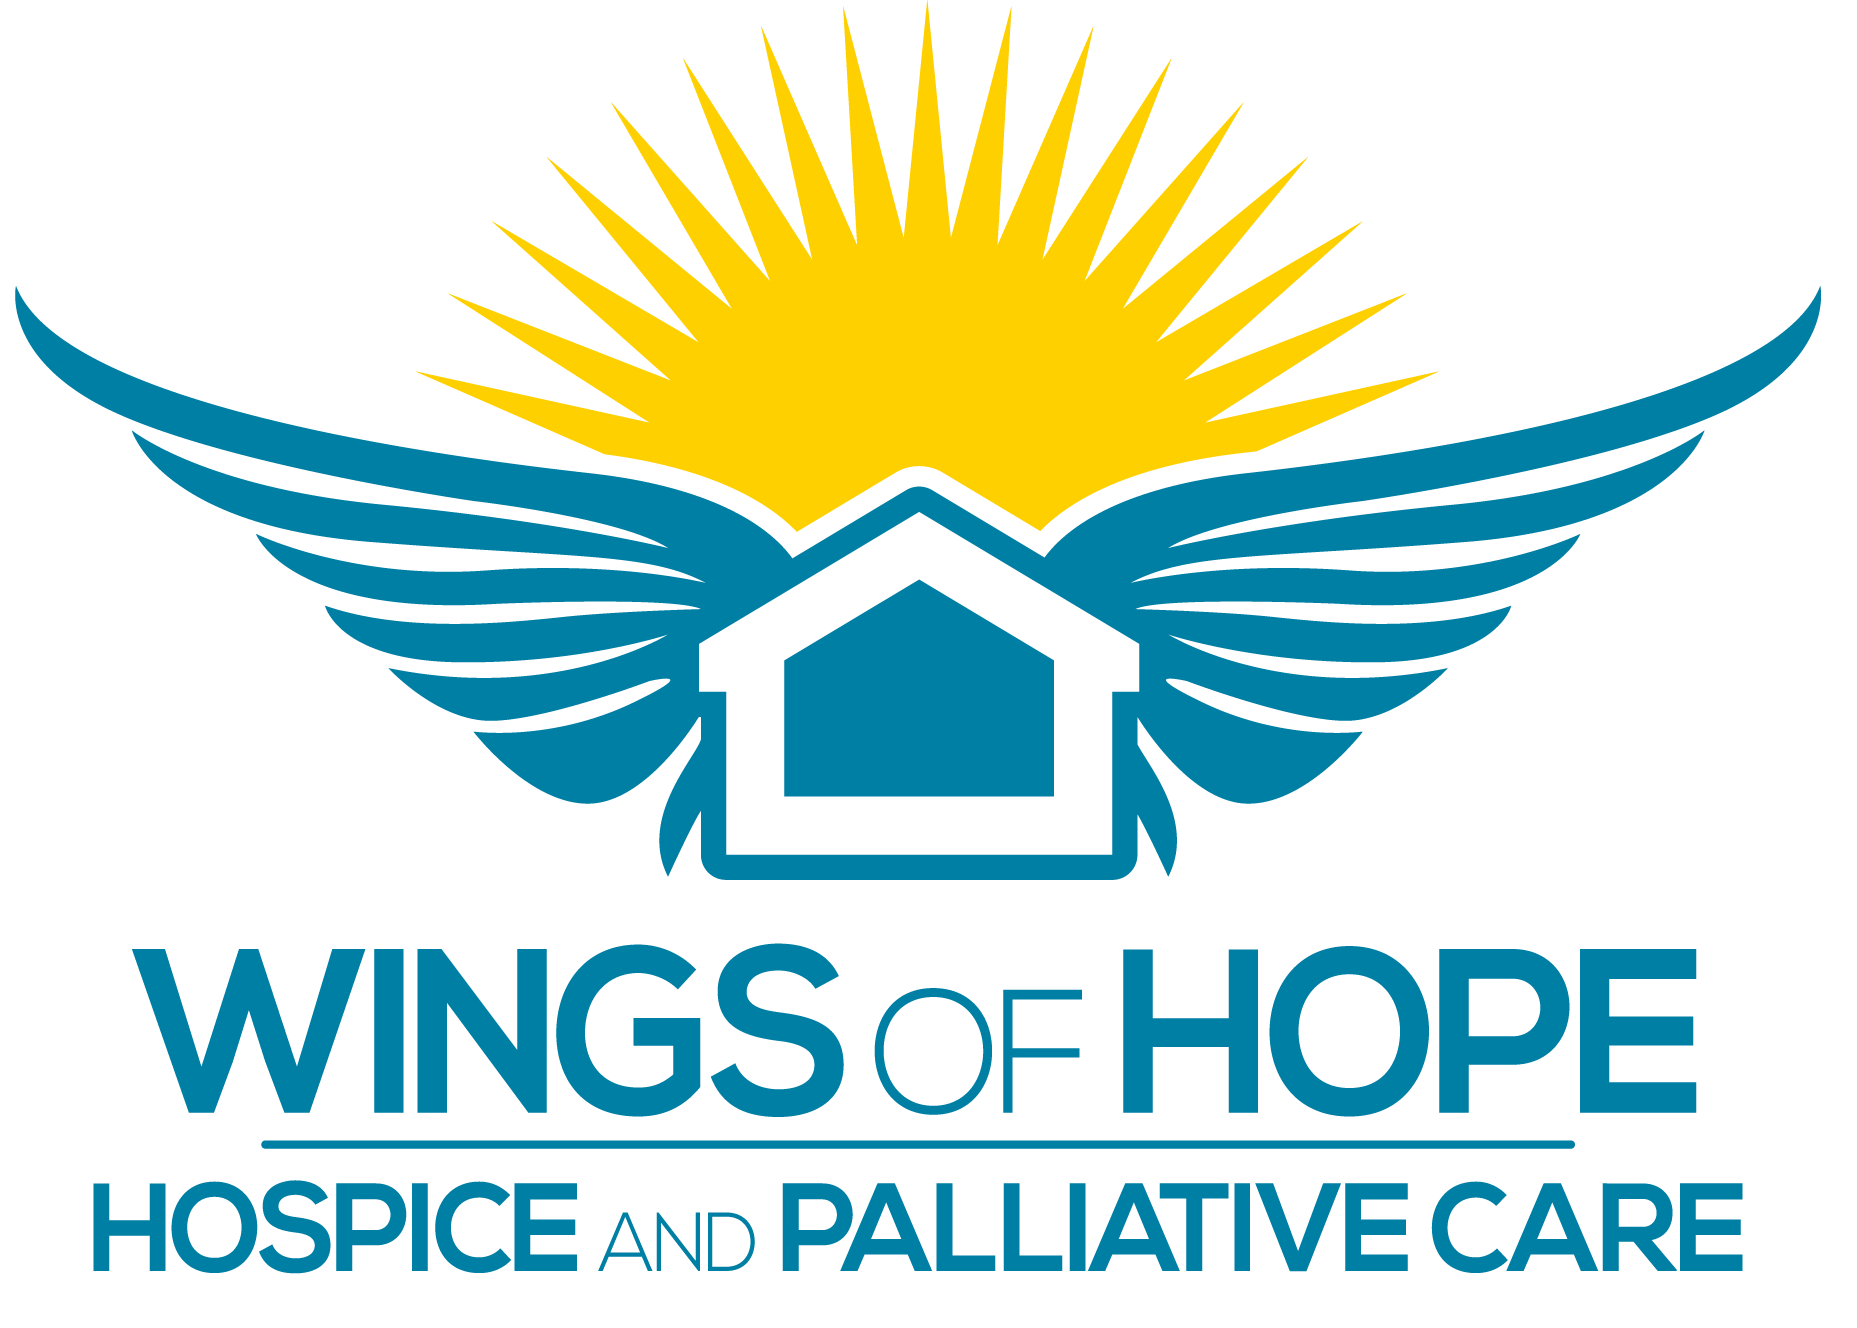 Hospice cna job in phoenix az at wings of hope hospice 15 16hr 1betcityfo Gallery